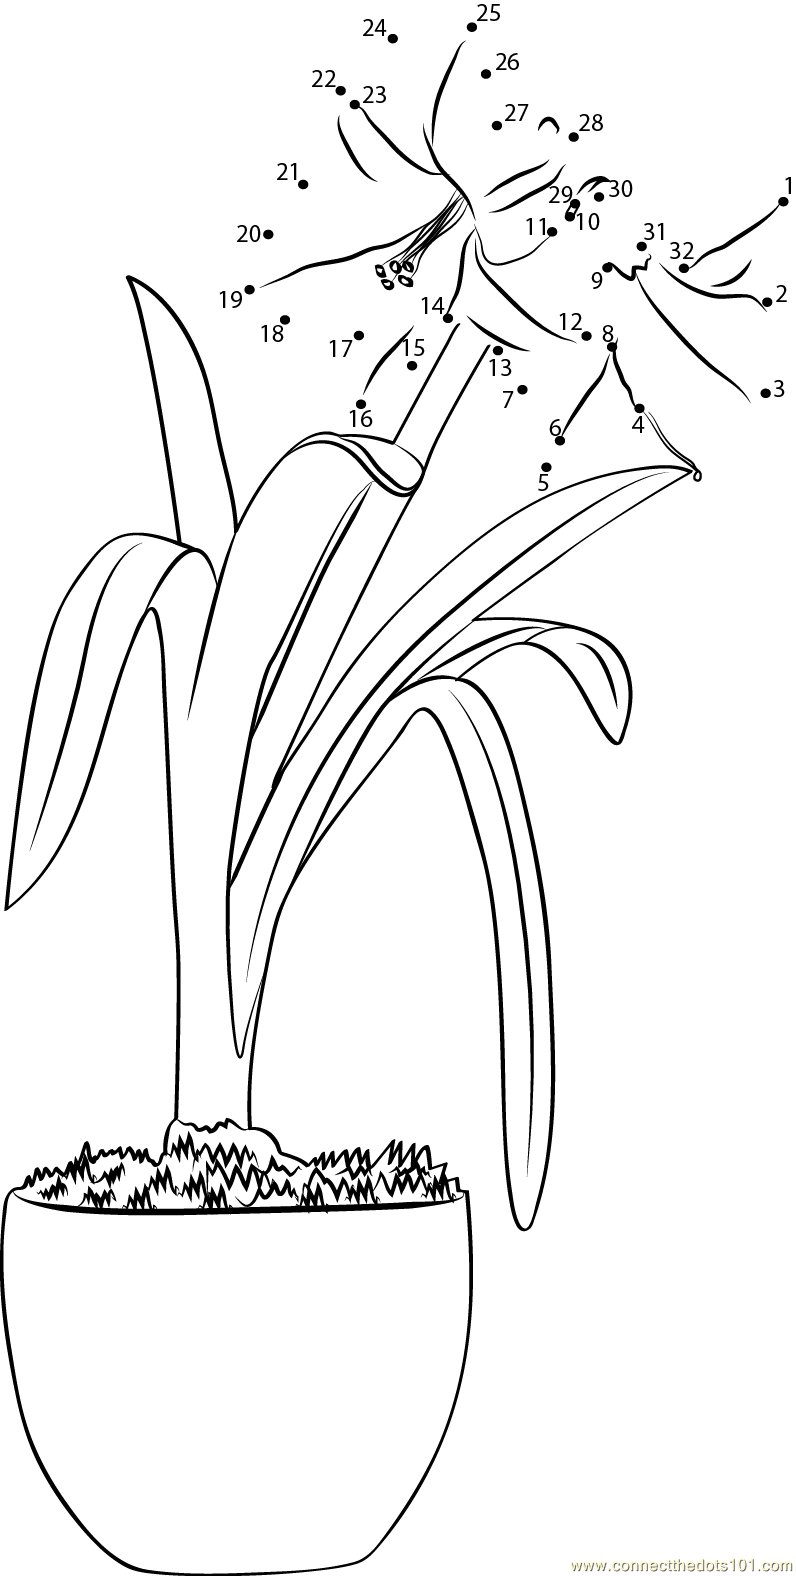 amaryllis coloring pages - photo#7